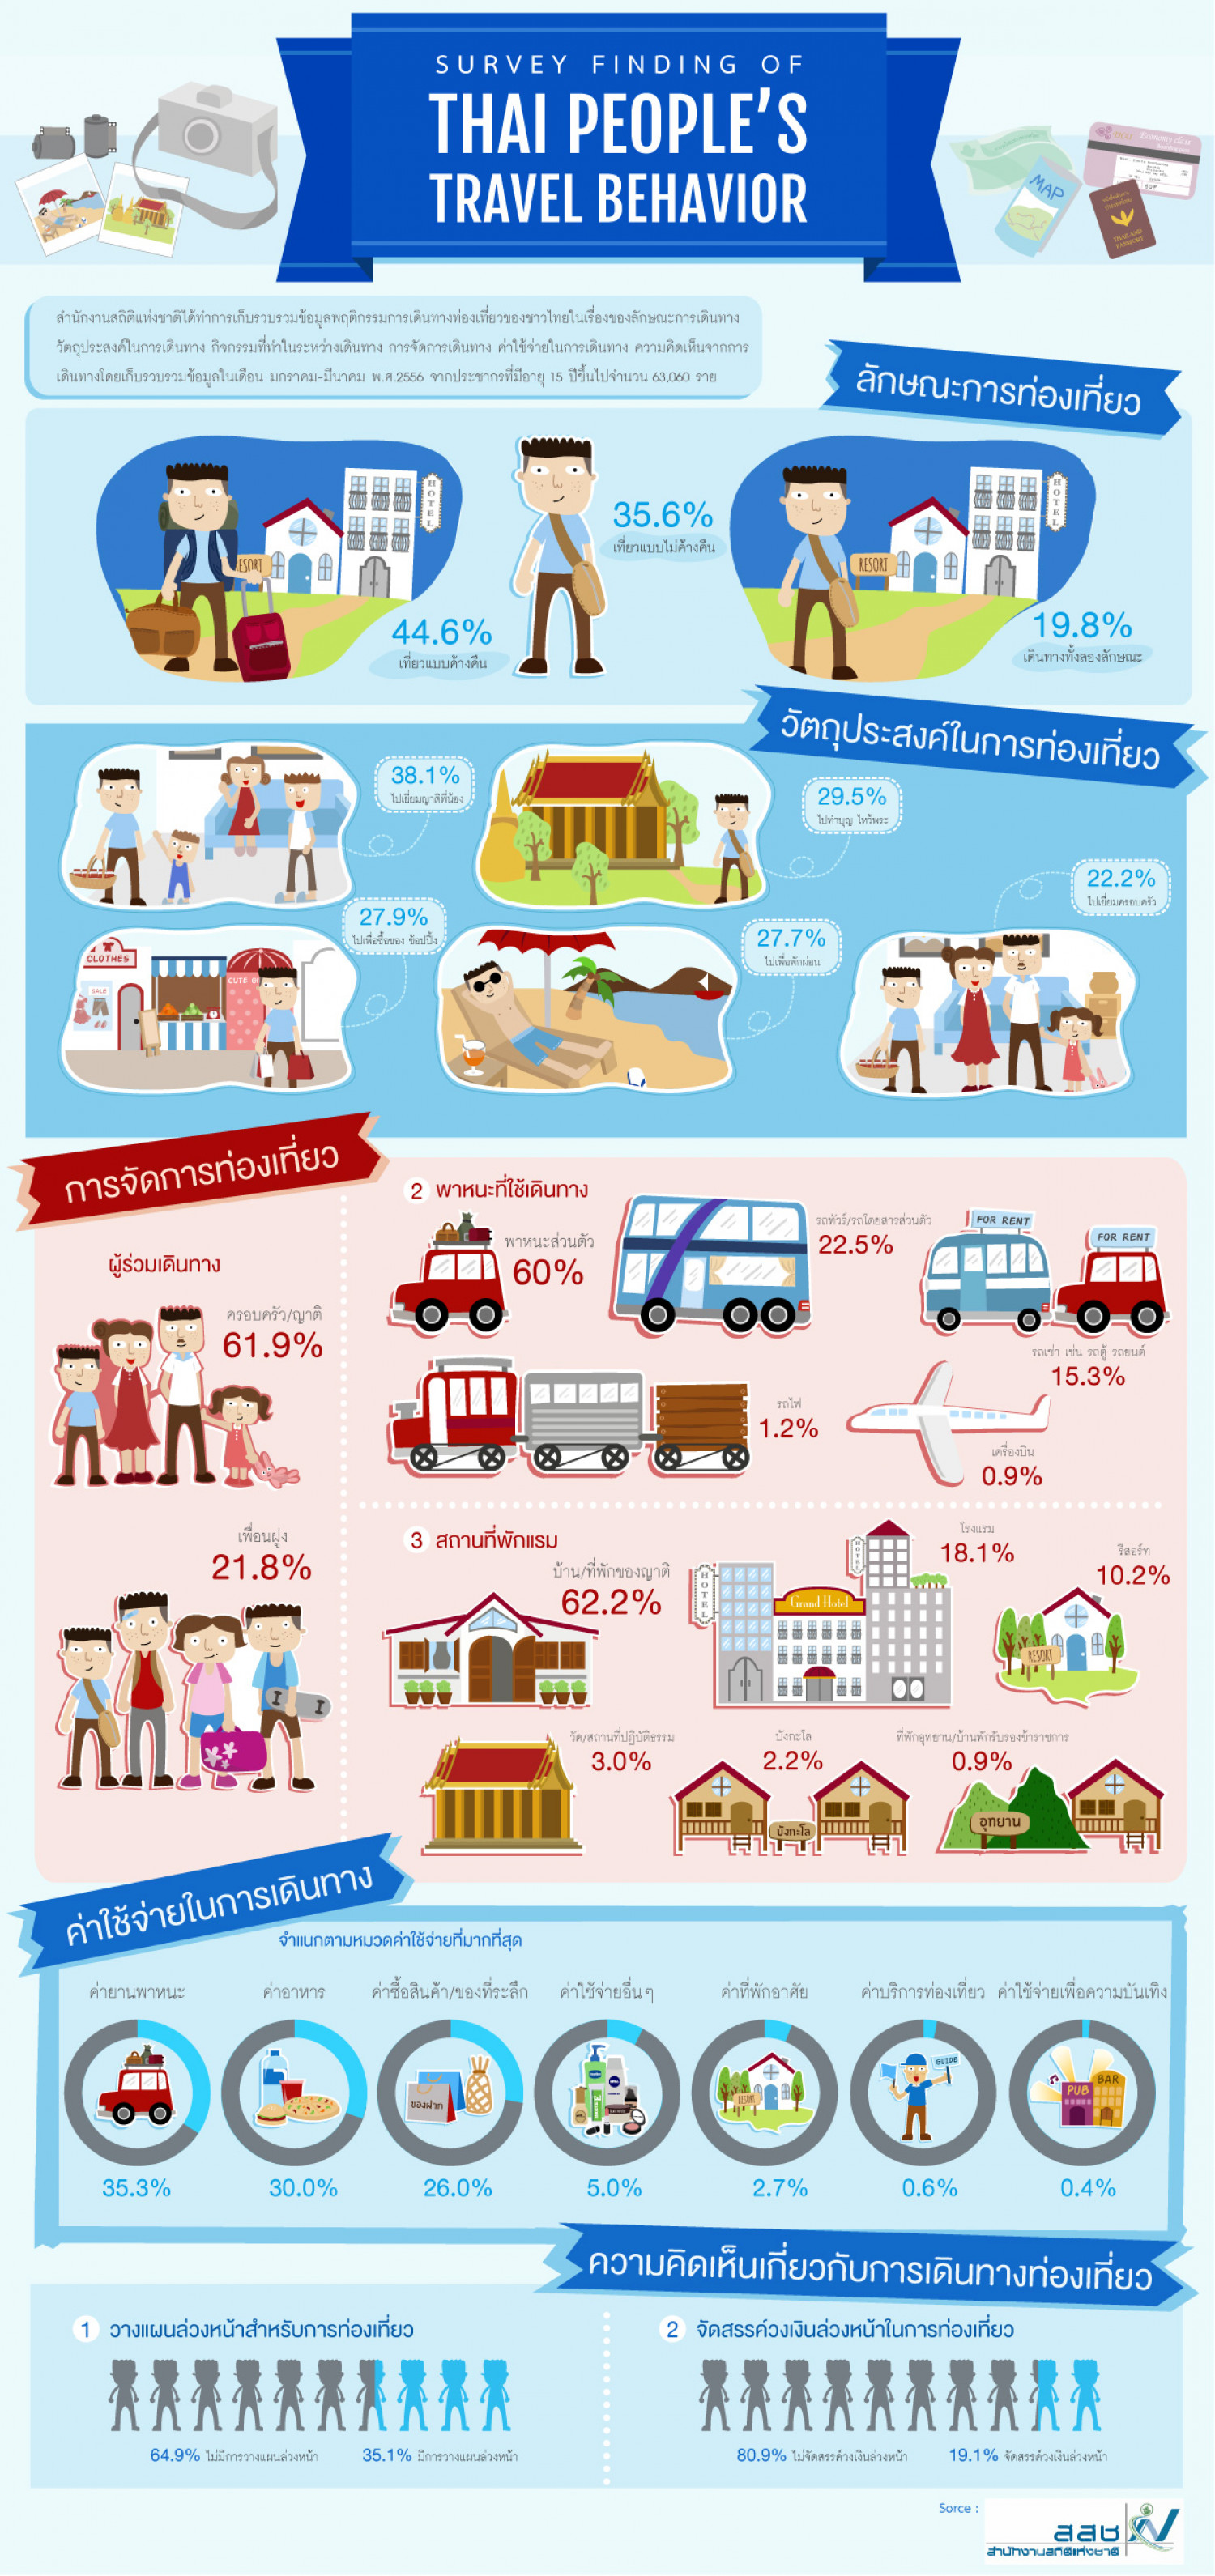 Survey Finding of Thai People's Travel Behavior Infographic